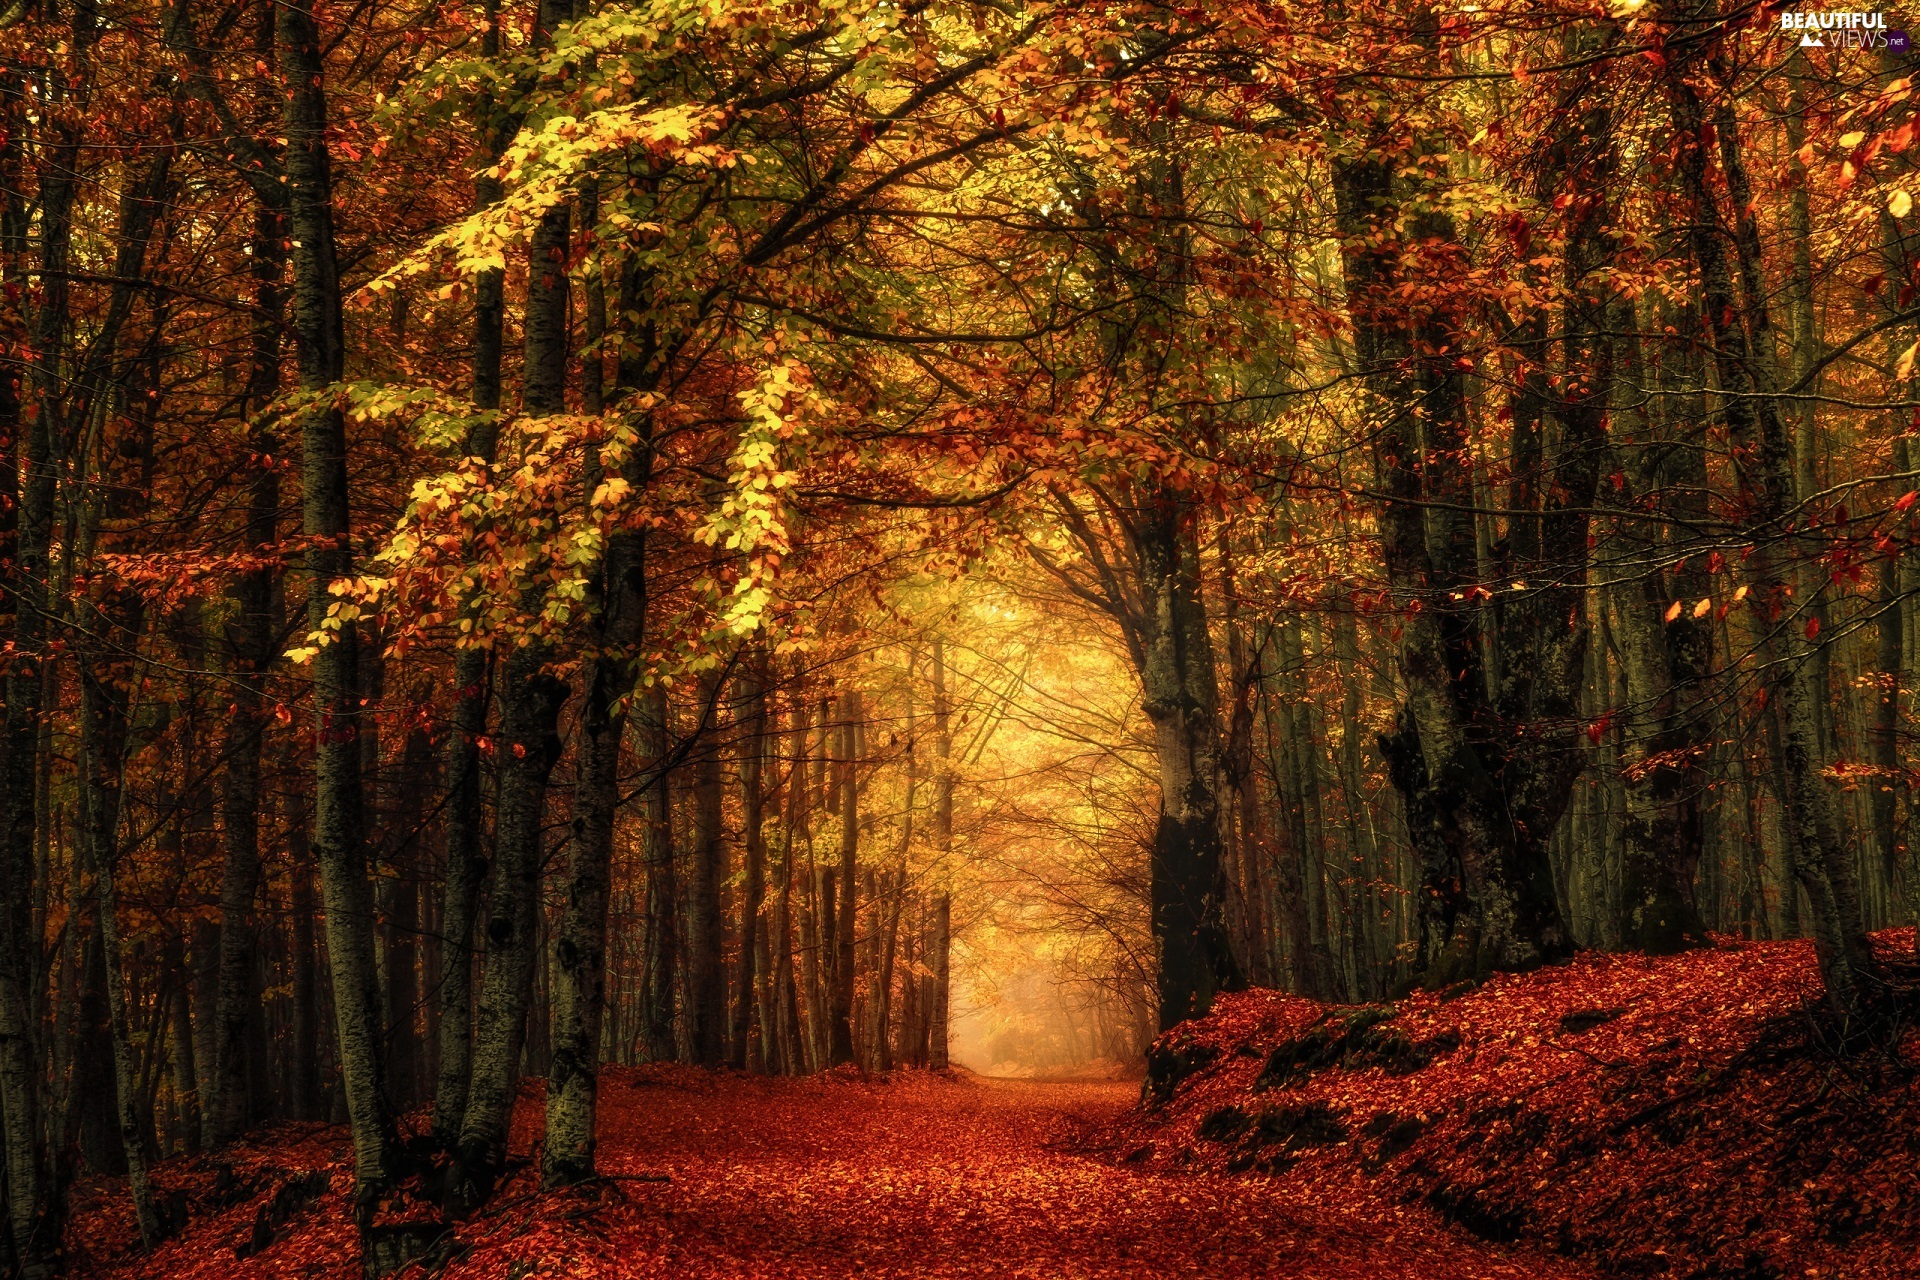 leaved, autumn, viewes, Way, trees, forest